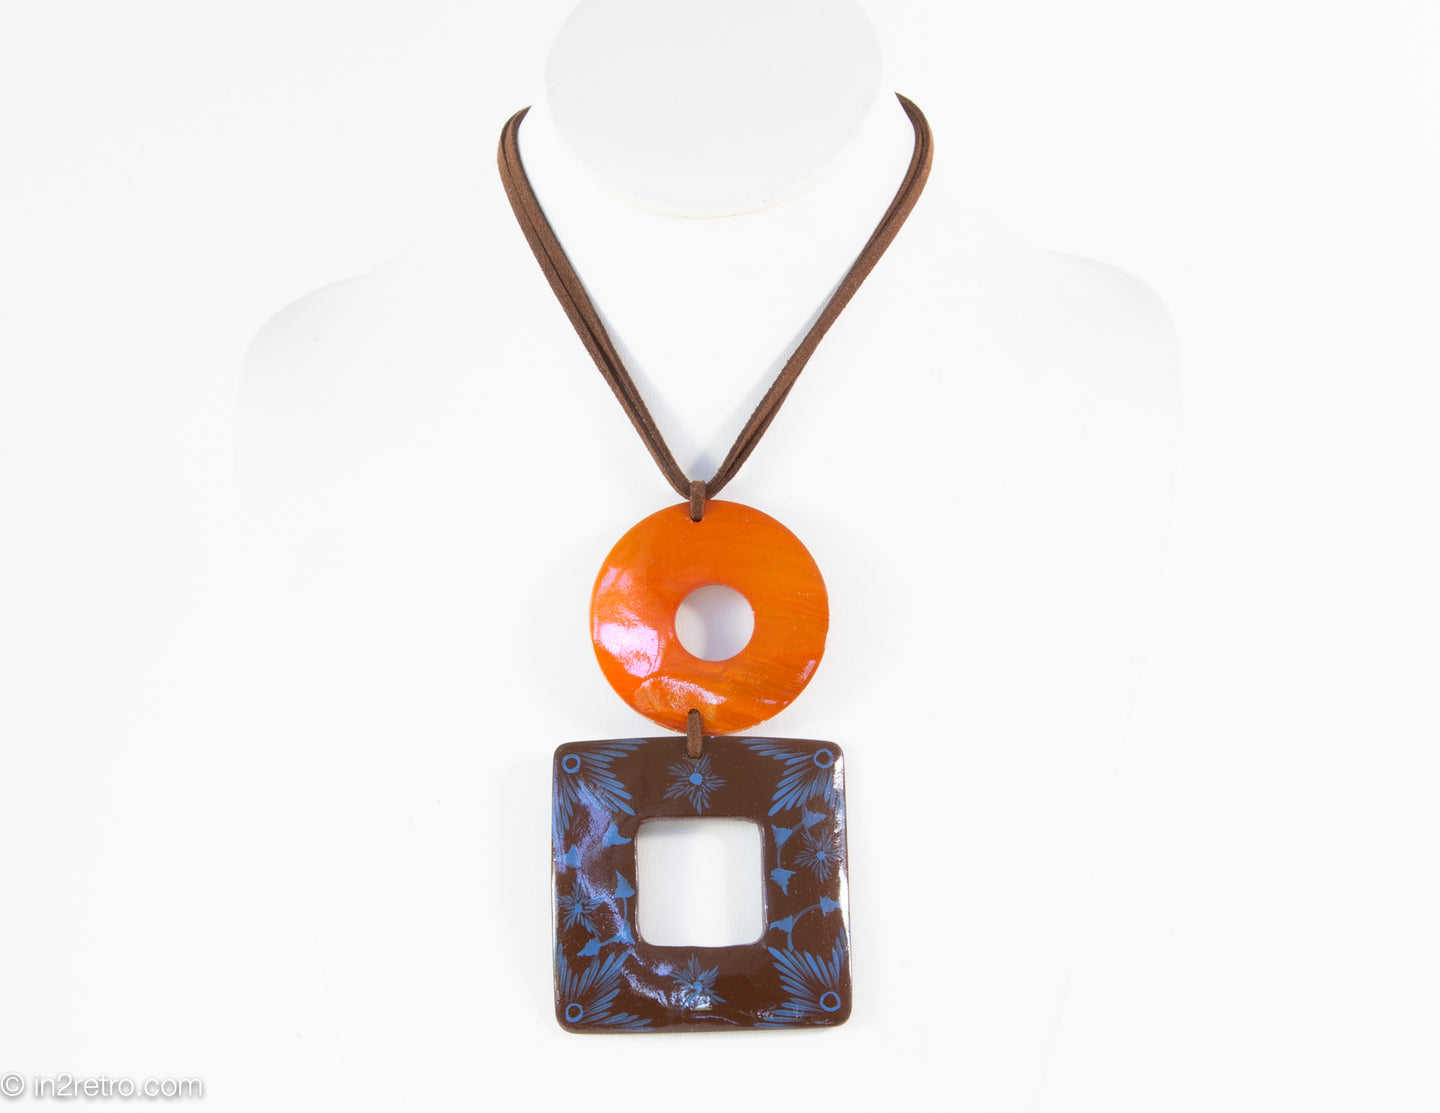 VINTAGE ARTISAN DESIGNED HAND-PAINTED GEOMETRIC SHELL PENDANT NECKLACE